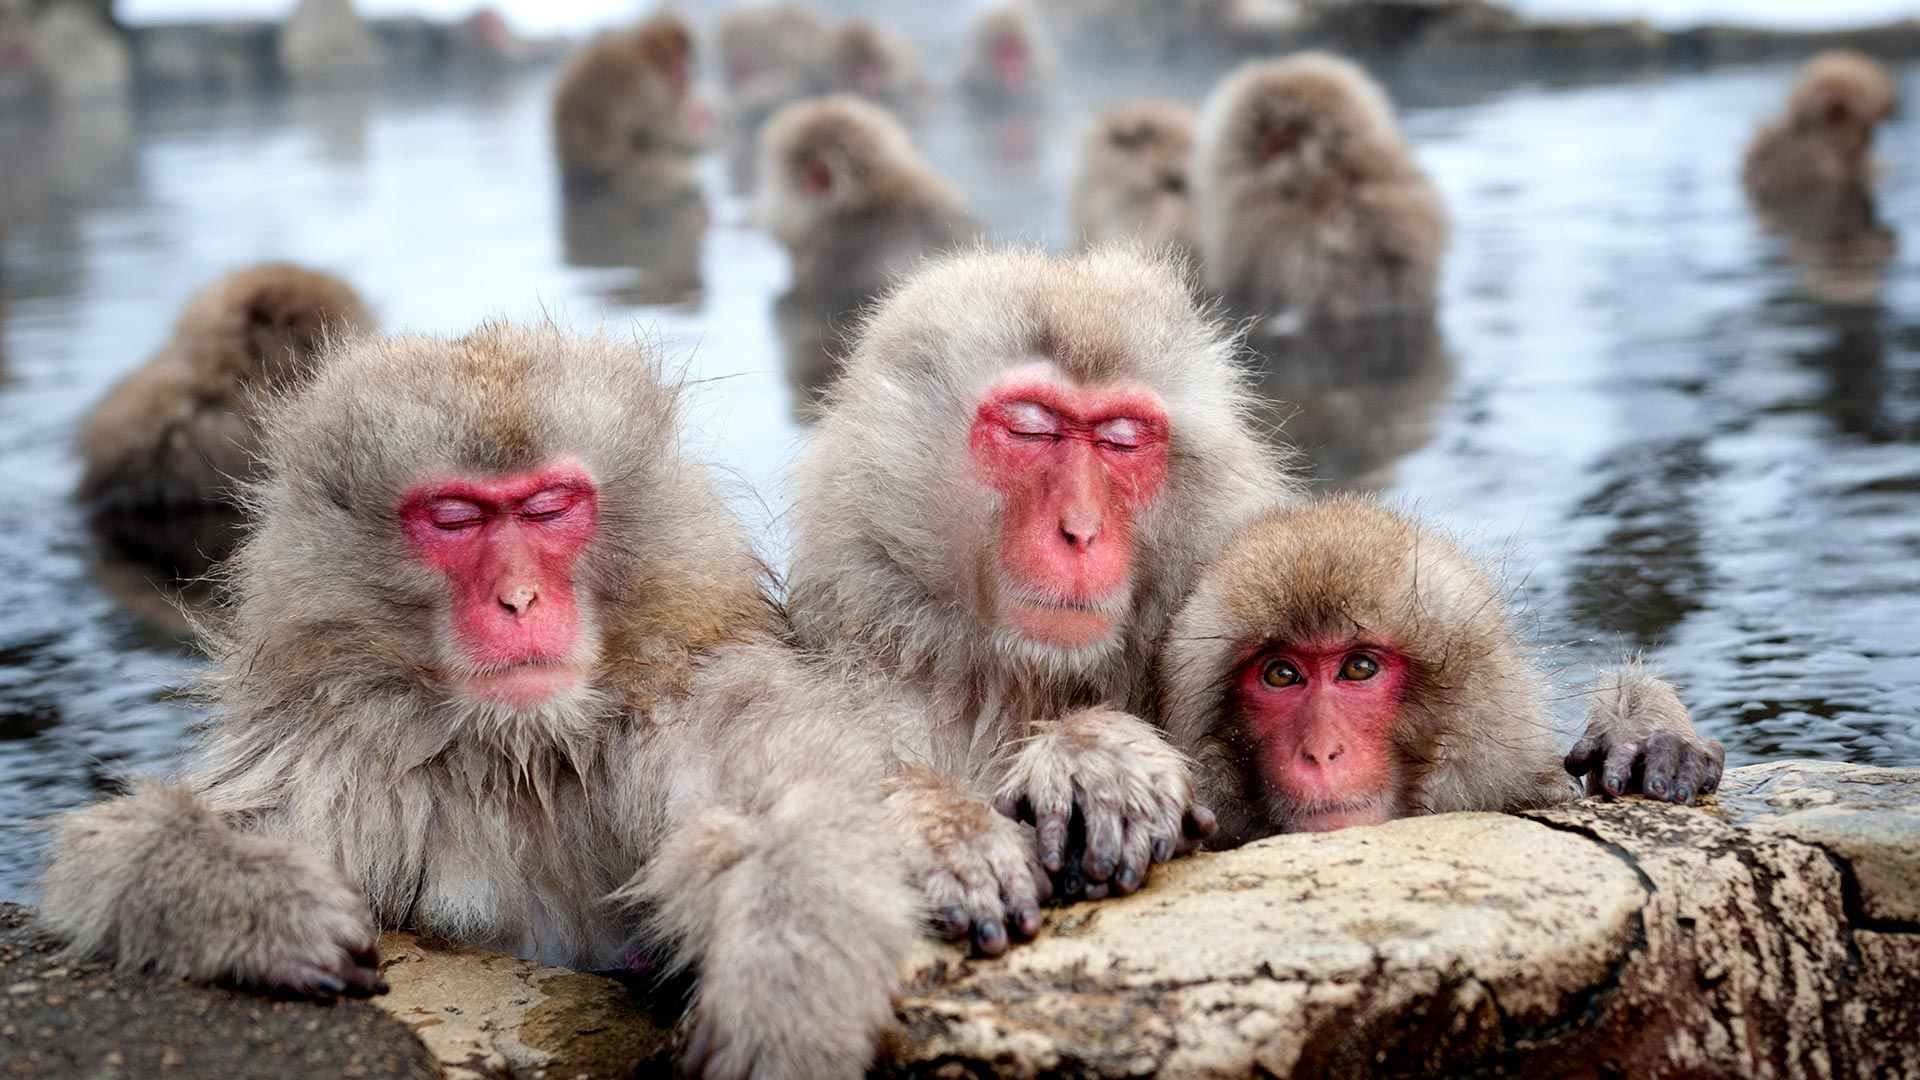 Snow monkeys (Japanese macaques), Nagano, Japan (© redswept/Shutterstock)